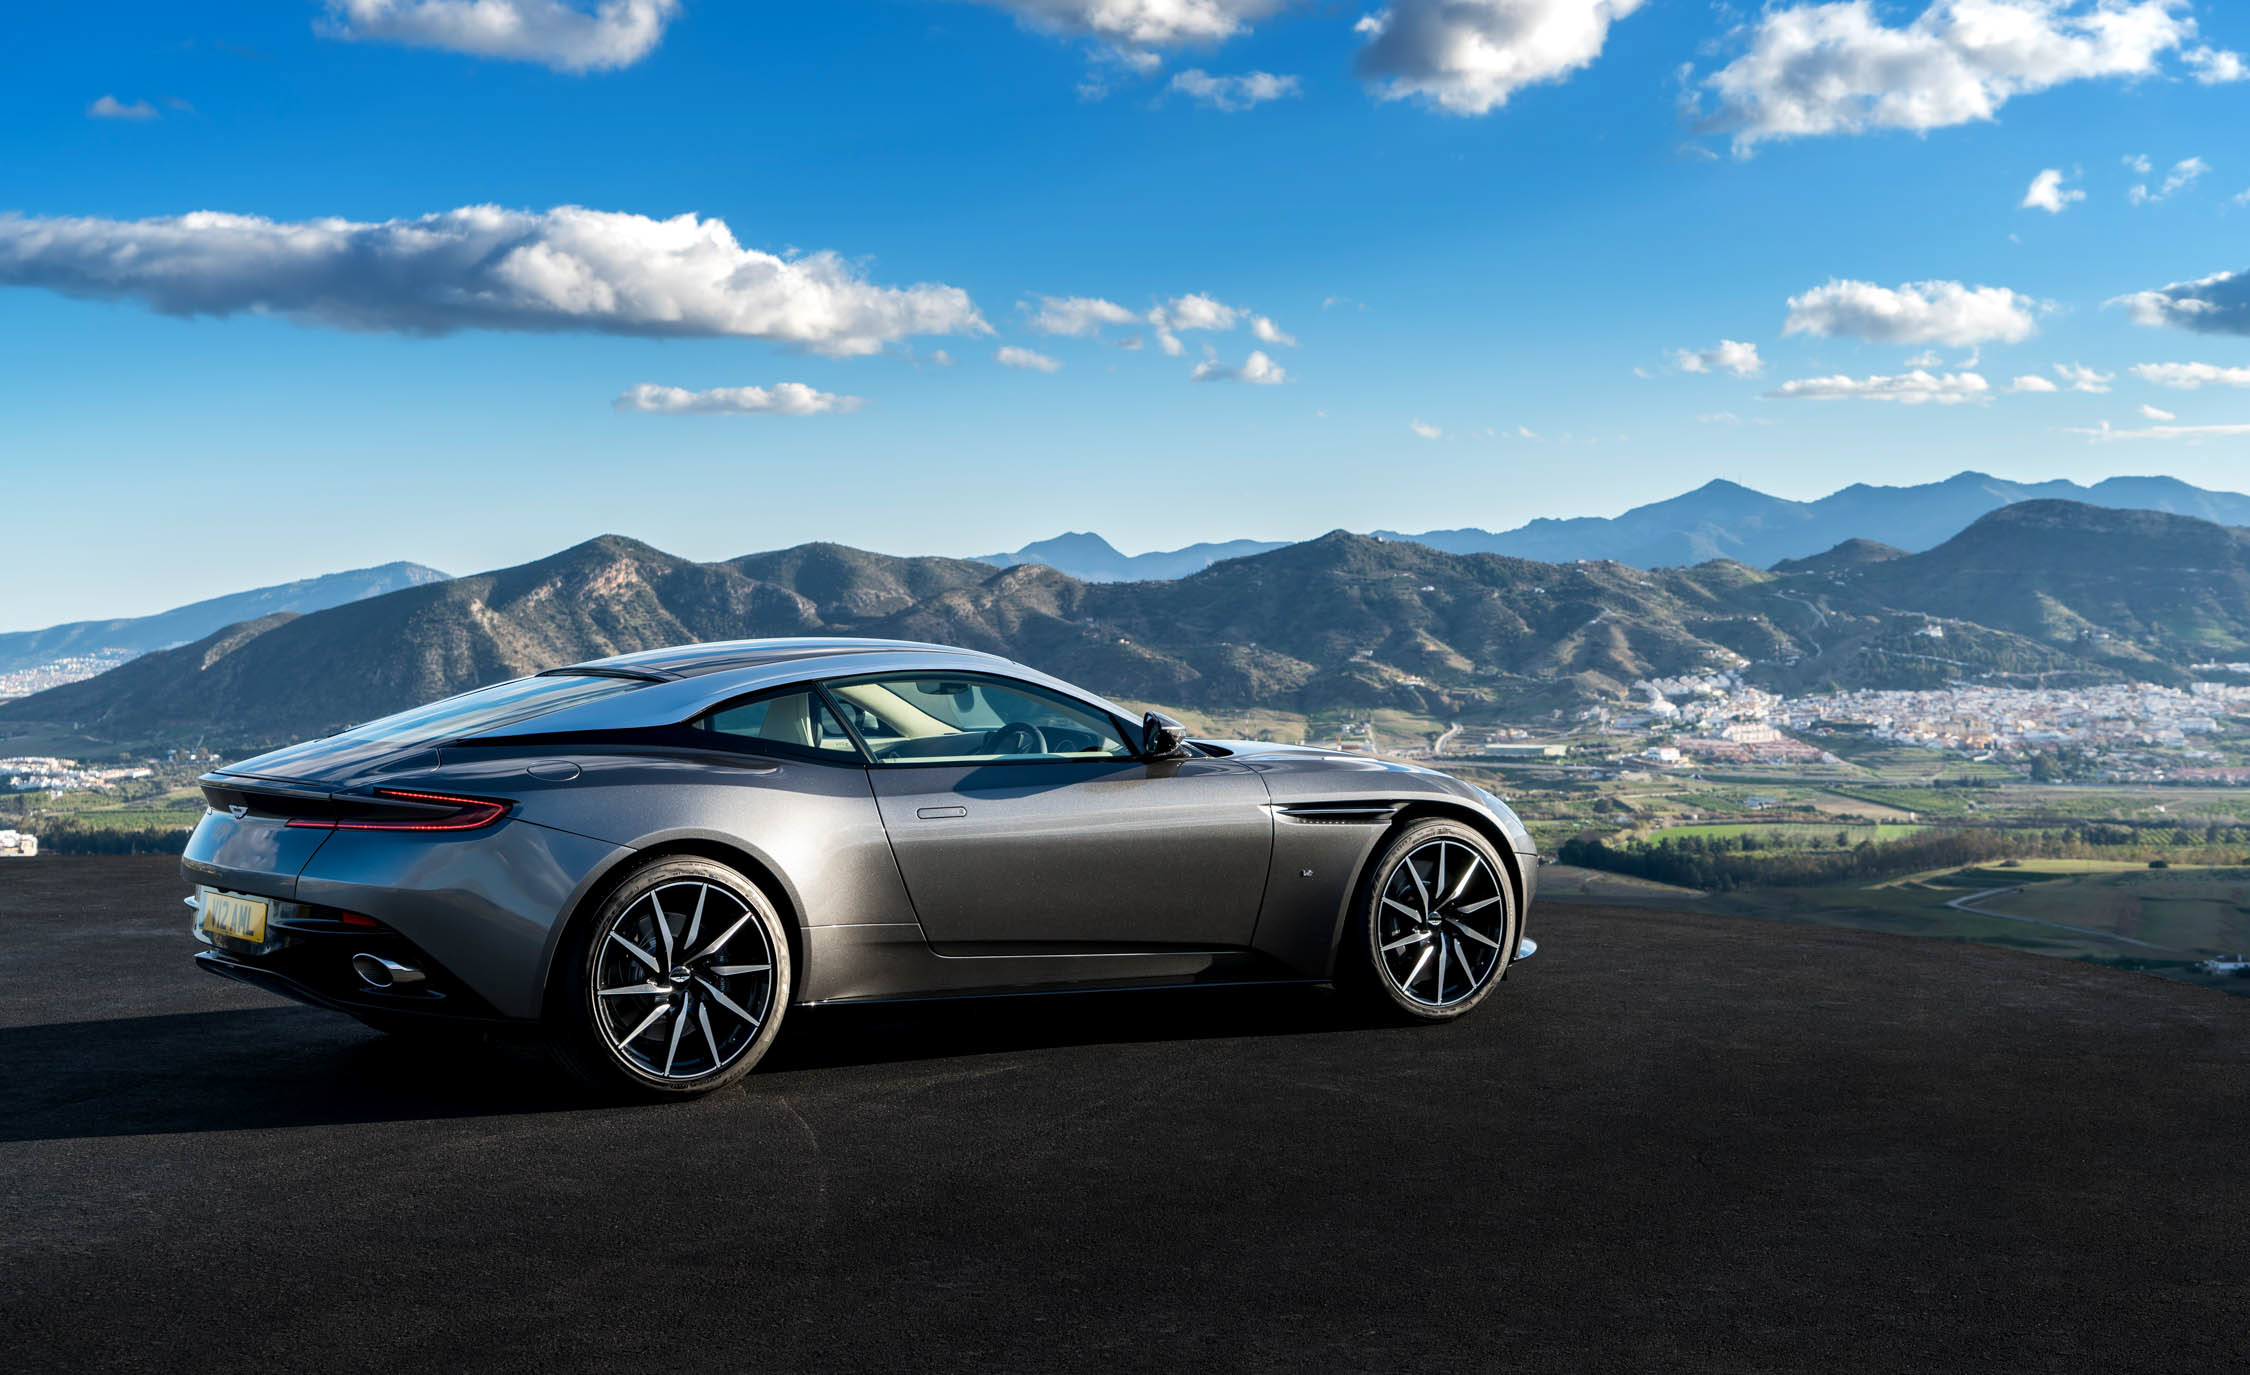 2017 Aston Martin Db11 Exterior Side And Rear View (Photo 9 of 22)